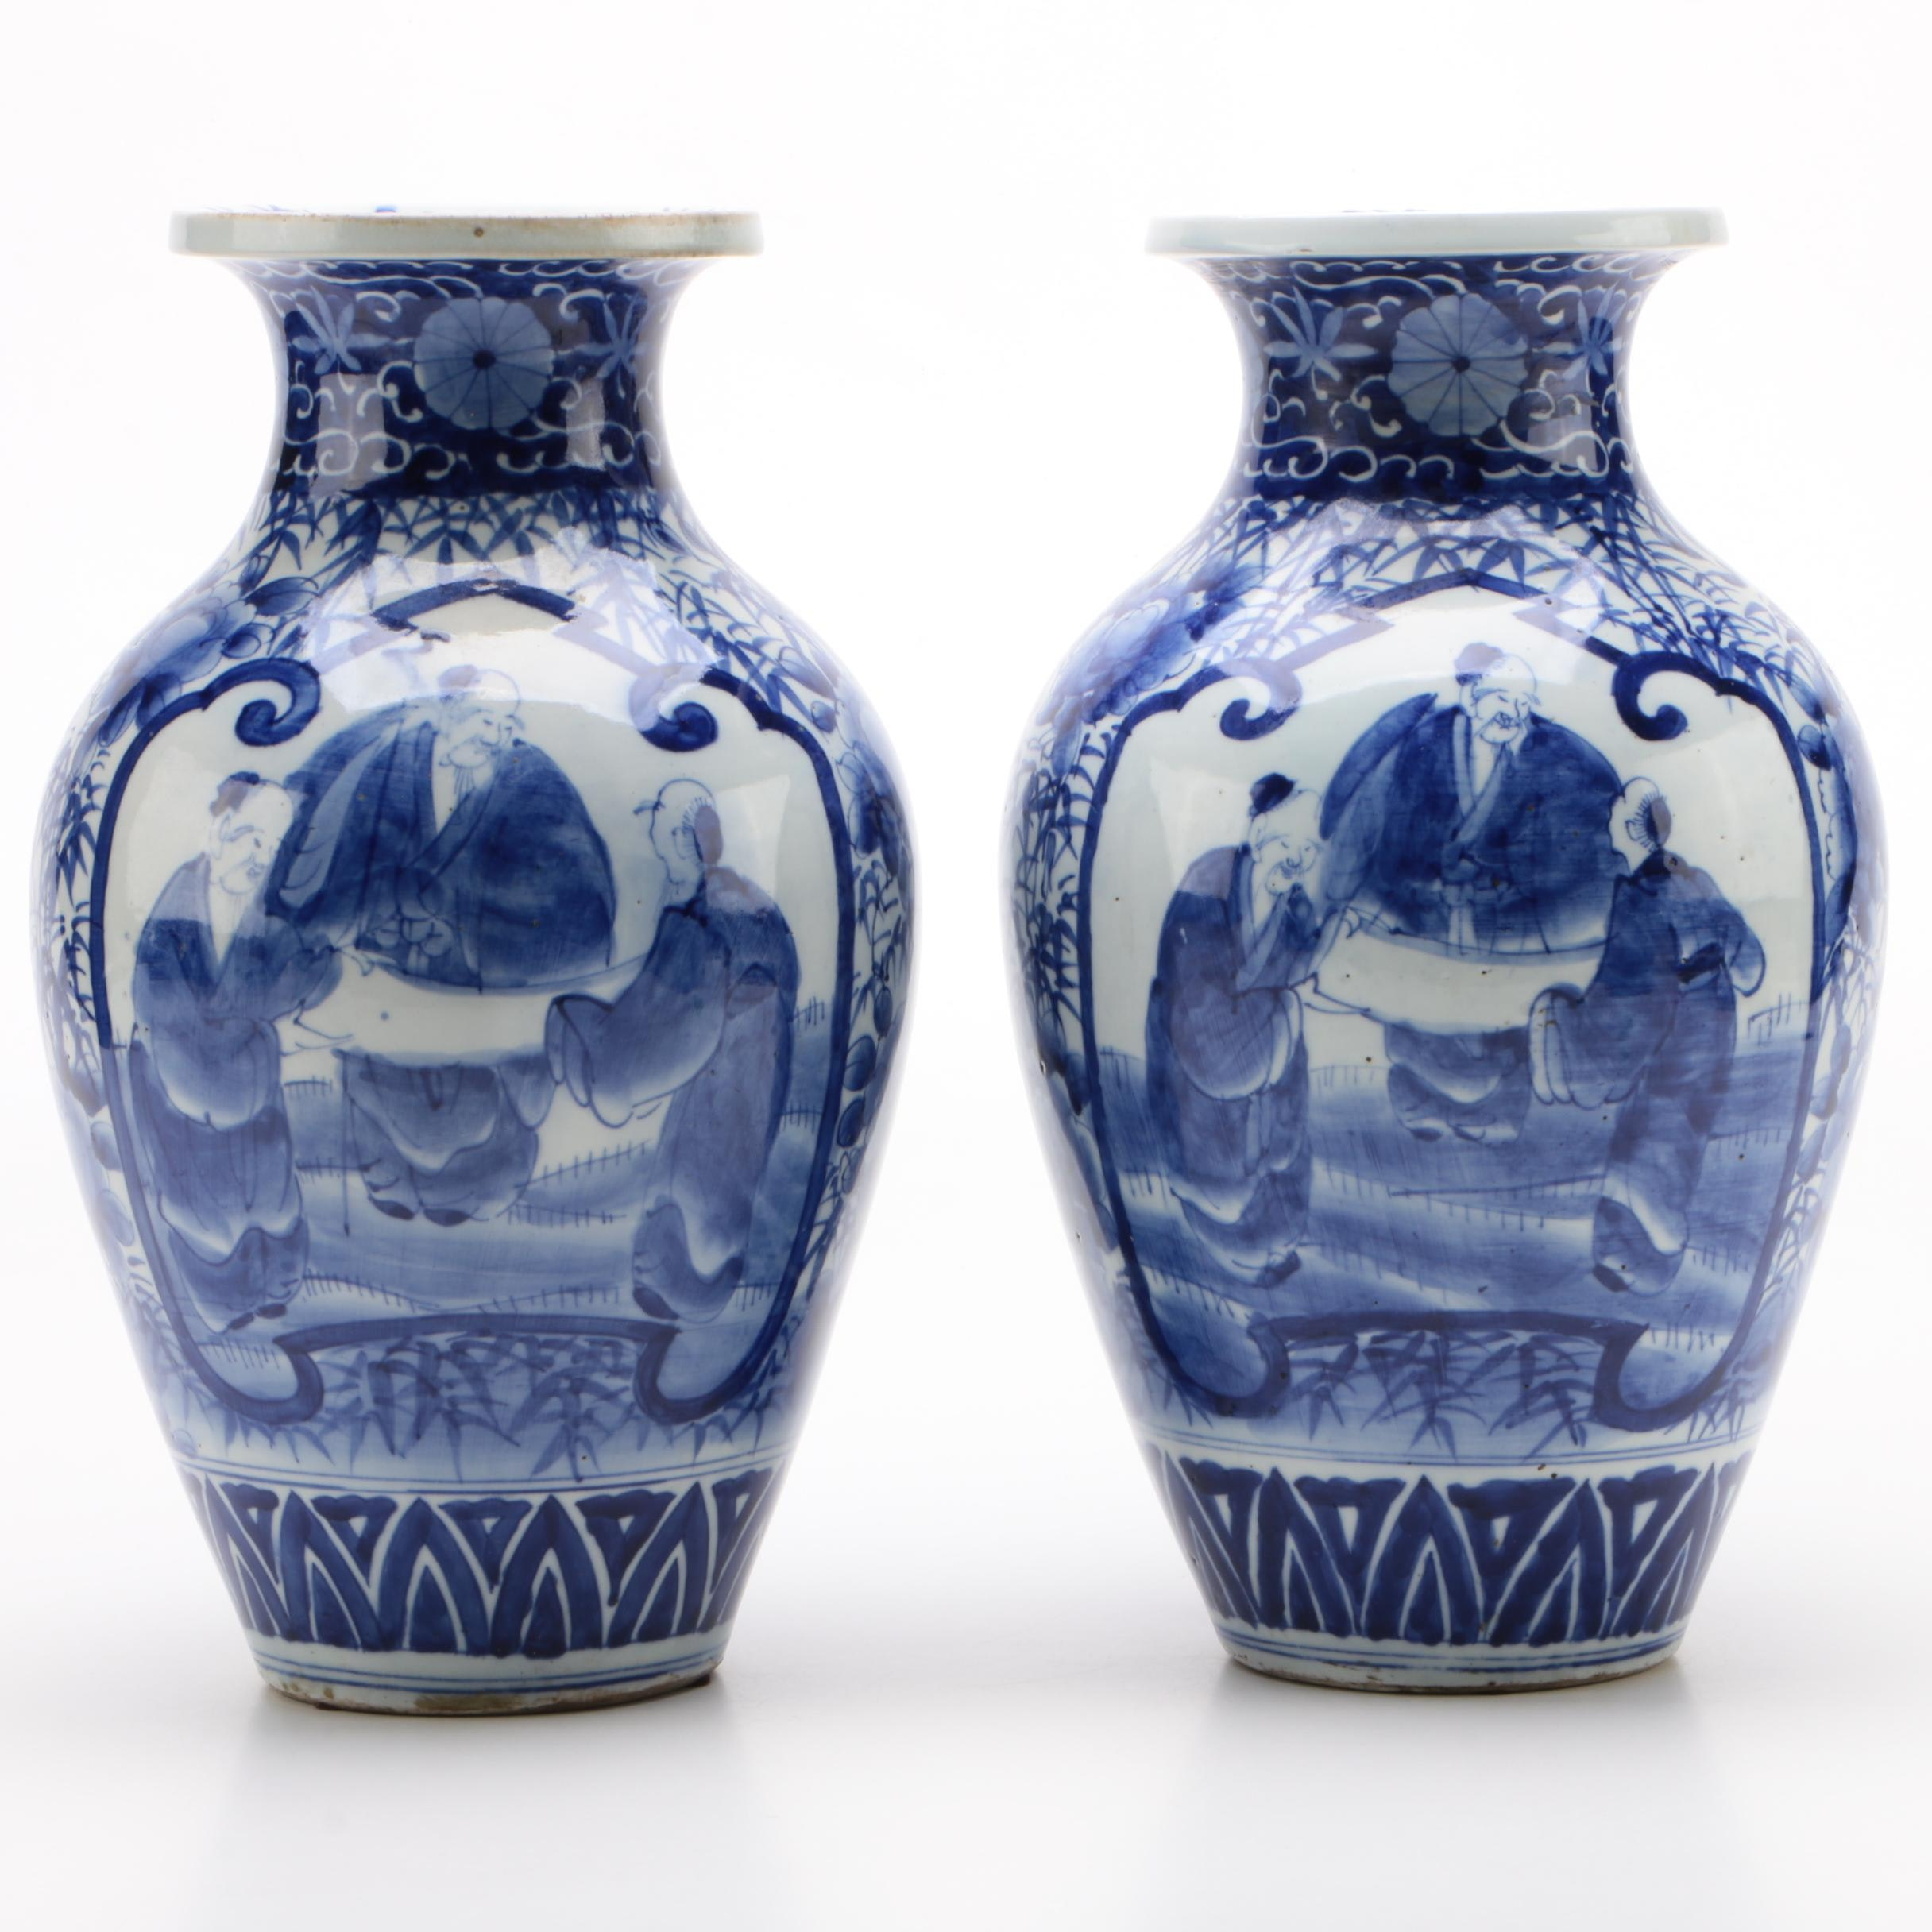 Pair of Chinese Canton Blue and White Porcelain Vases, Late 19th Century